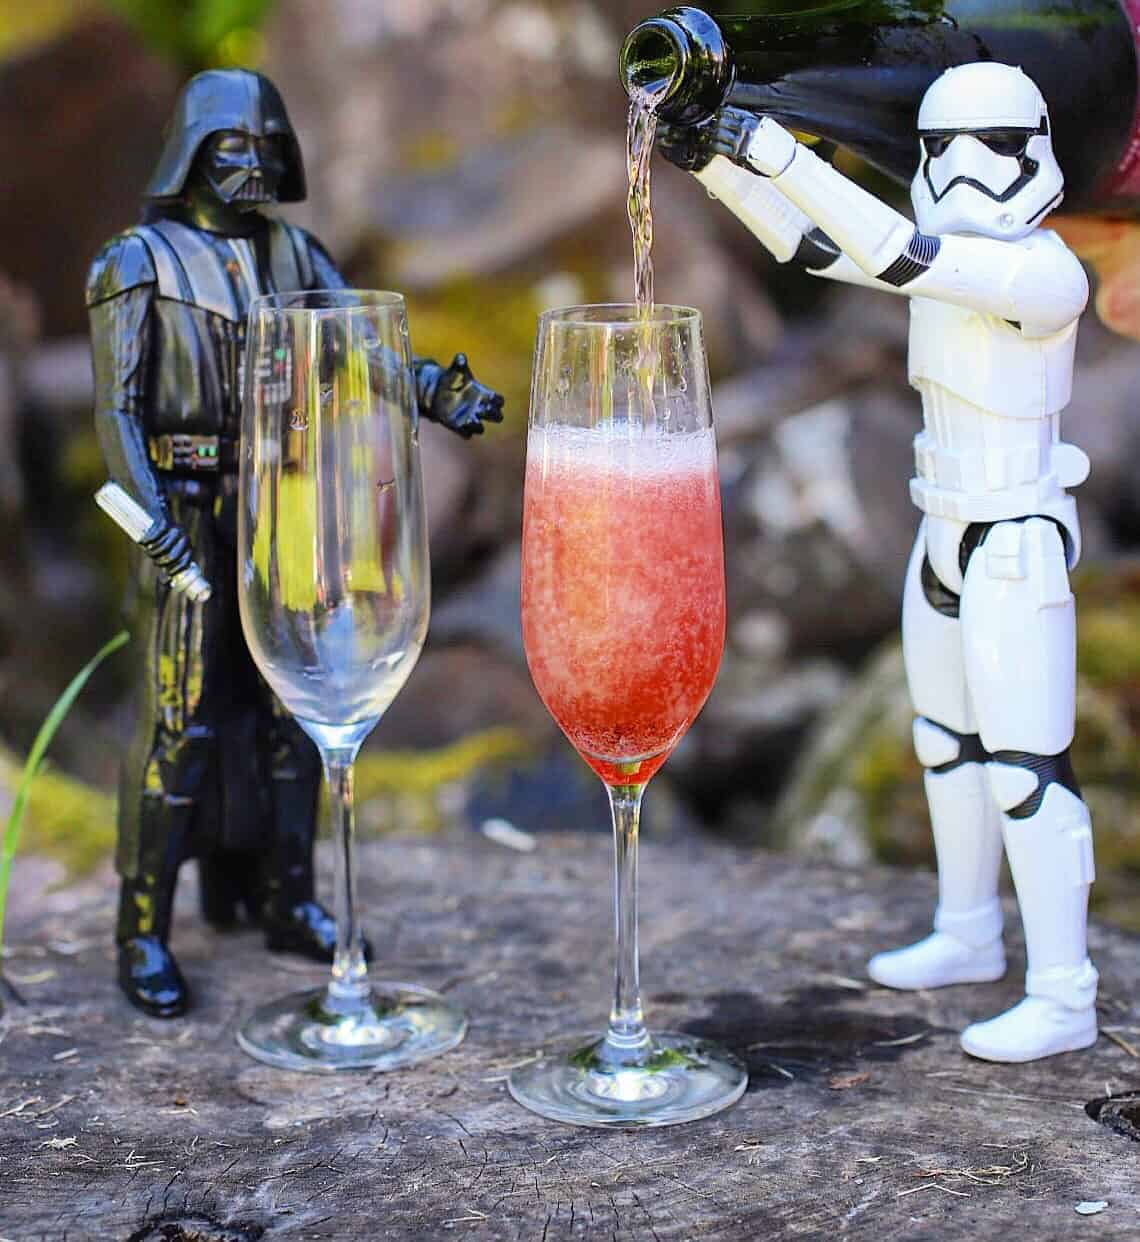 Celebrating, Star Wars Style